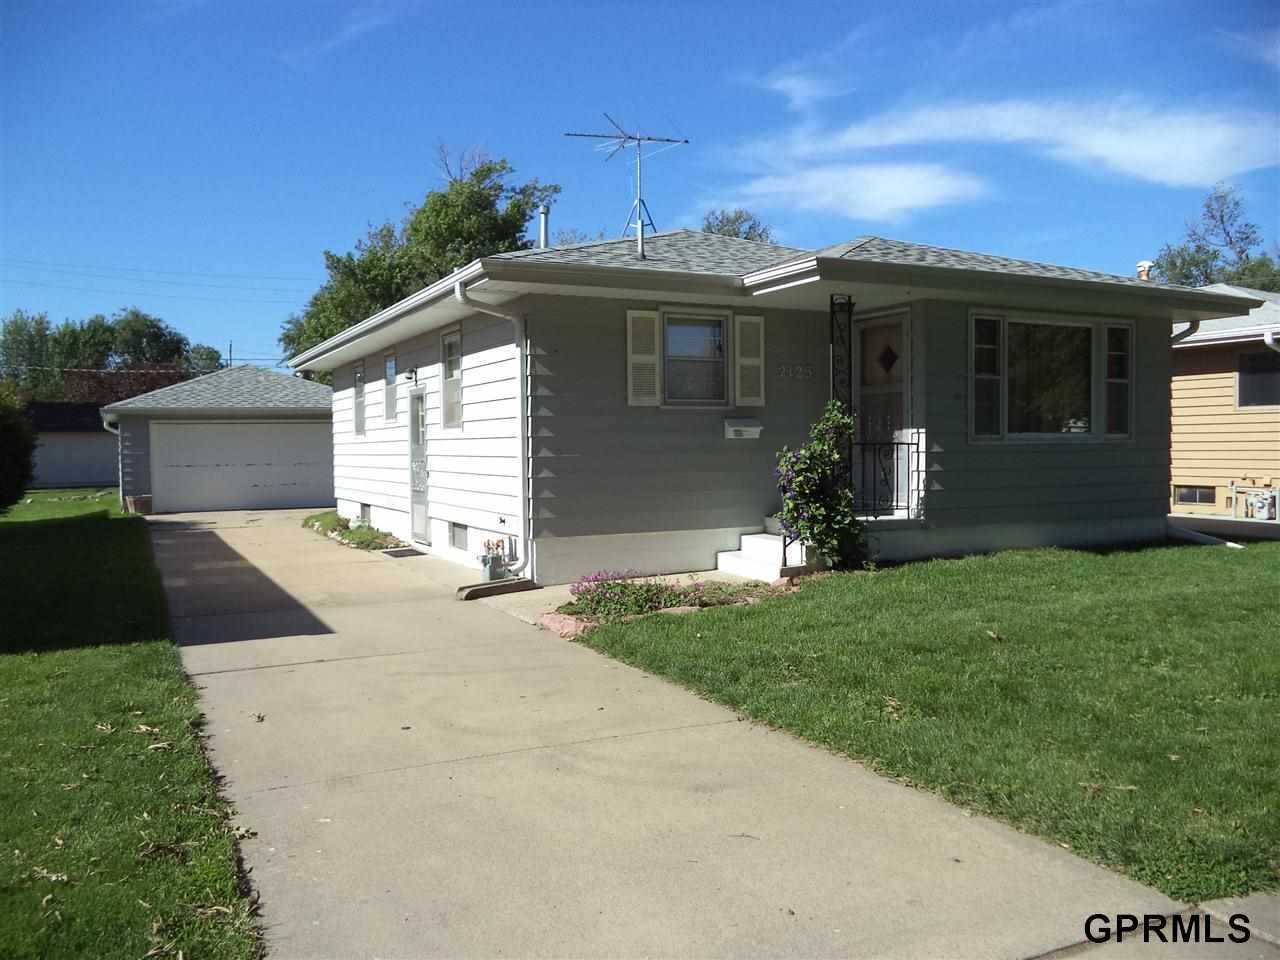 Rental Homes for Rent, ListingId:28607804, location: 2123 Avenue H Council Bluffs 51501